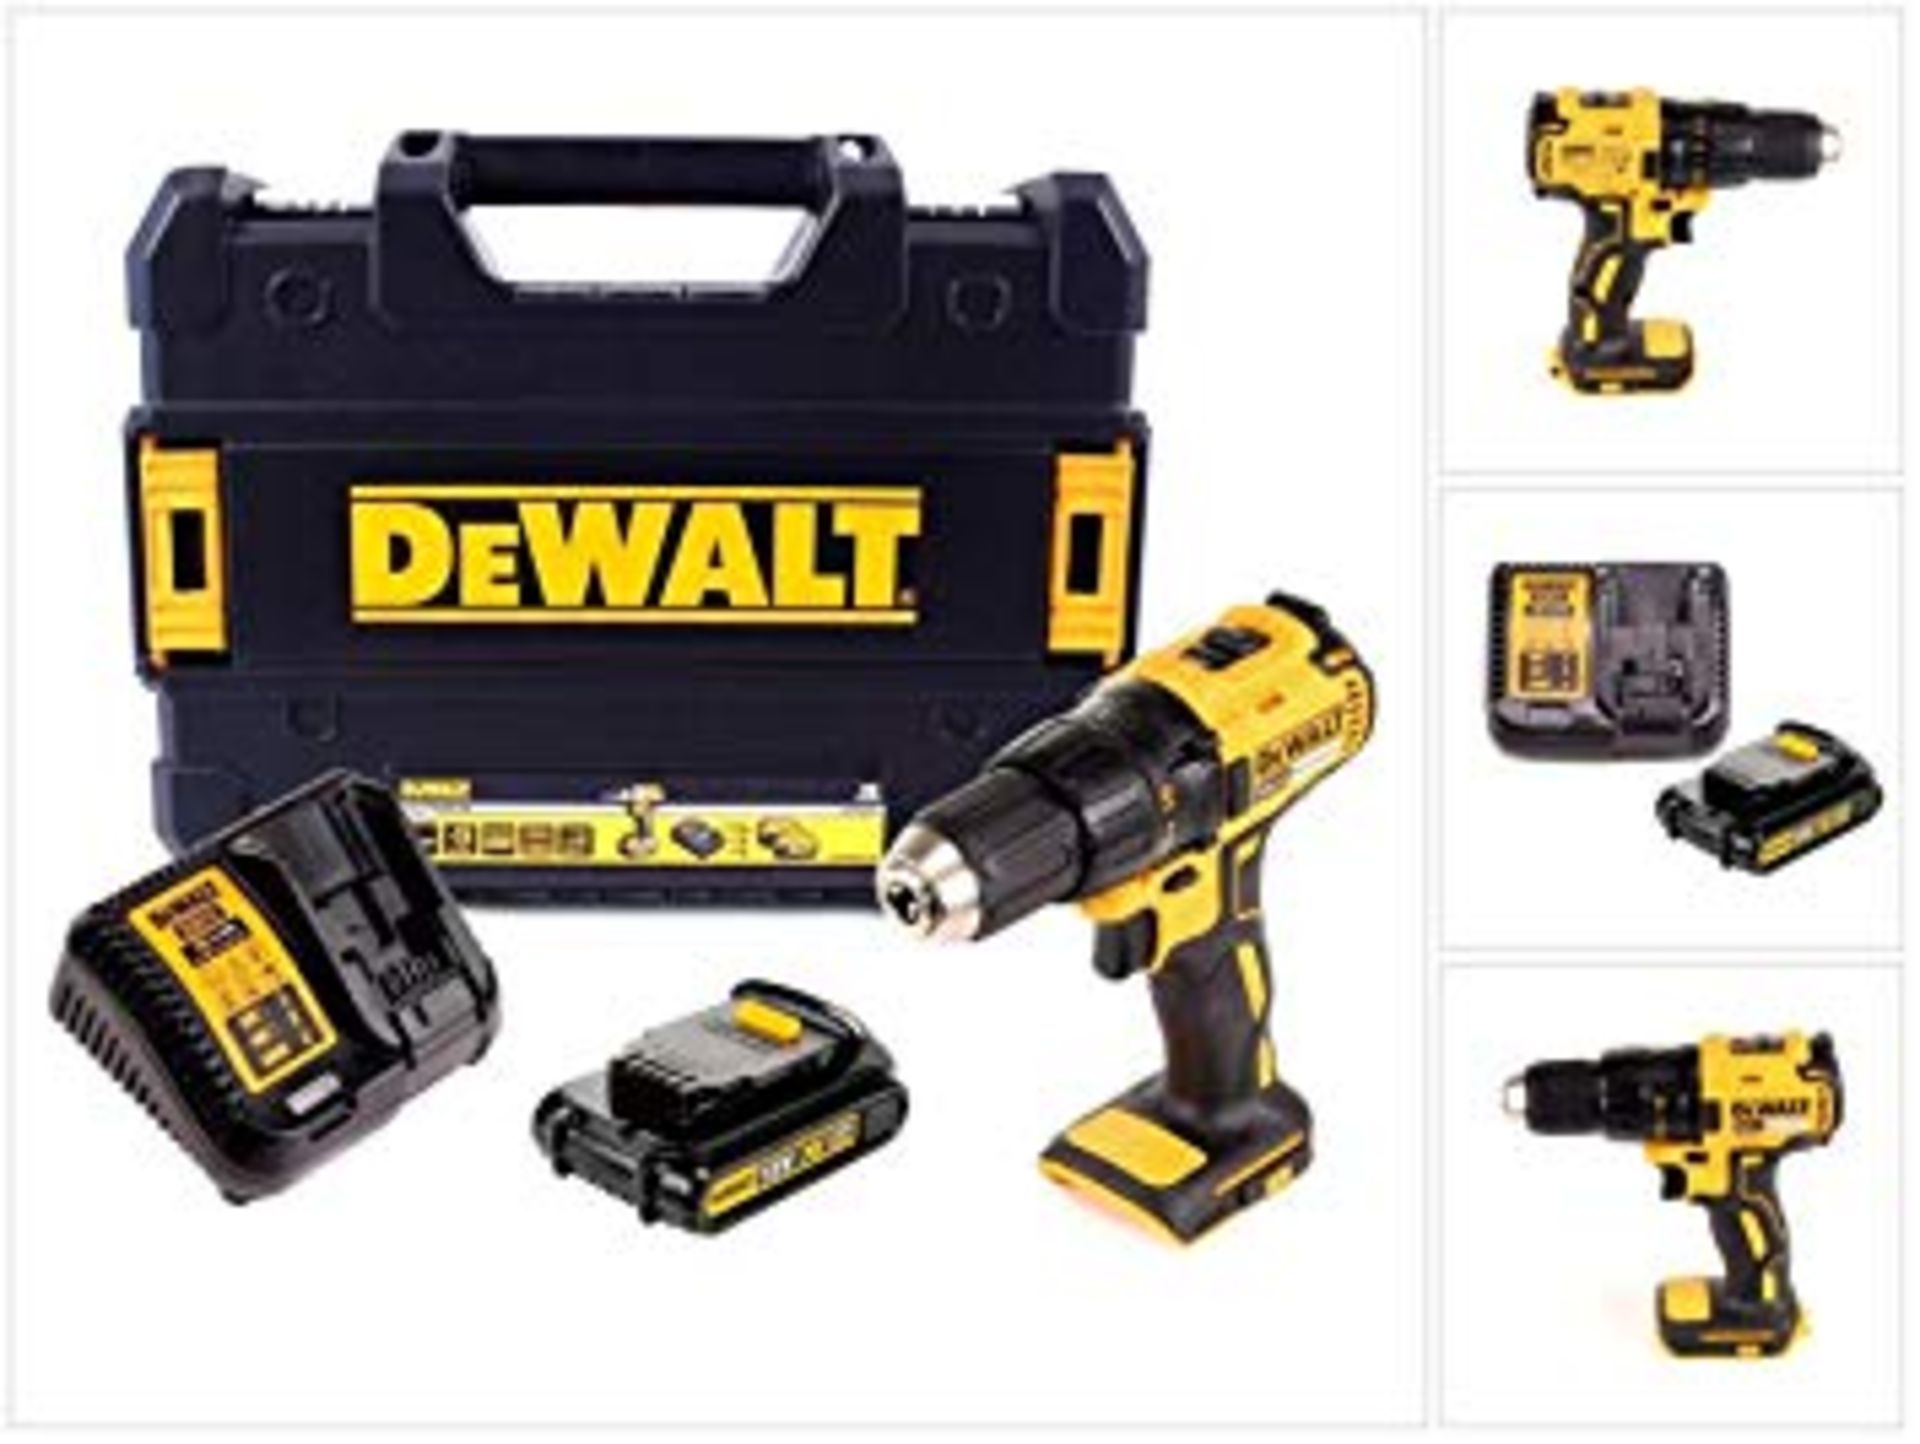 Lot 17008 - V Brand New DeWalt 18v Brushless Drill Driver With Battery And Charger In DeWalt Plastic Case